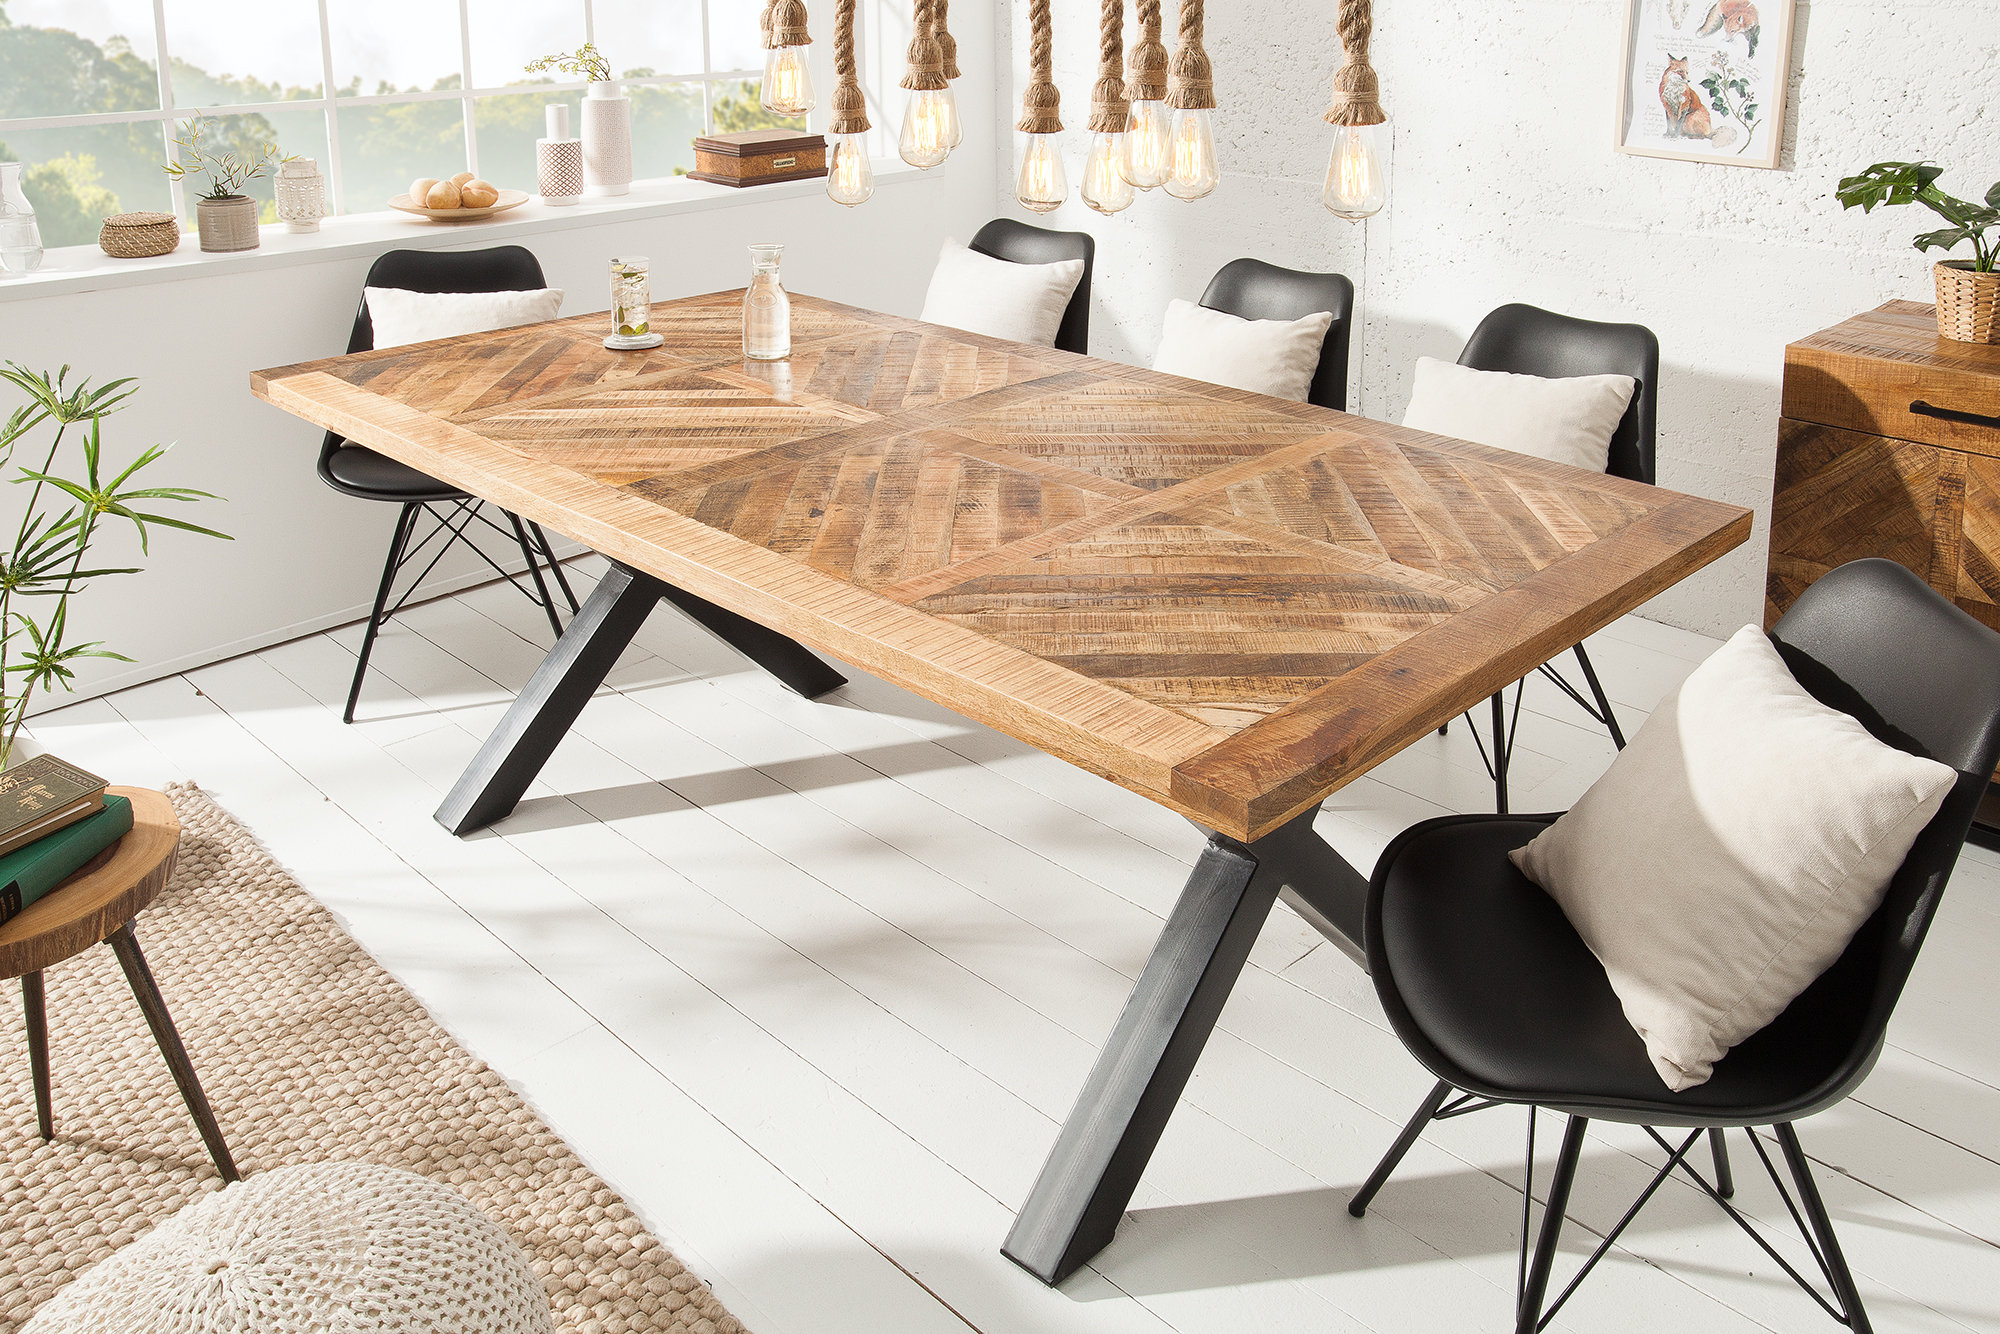 INFINITY HOME Solid Dining Table 9cm Natural Mango Wood   SITHEIM  EuropeINFINITY HOME Solid Dining Table 9cm Natural Mango Wood9.9